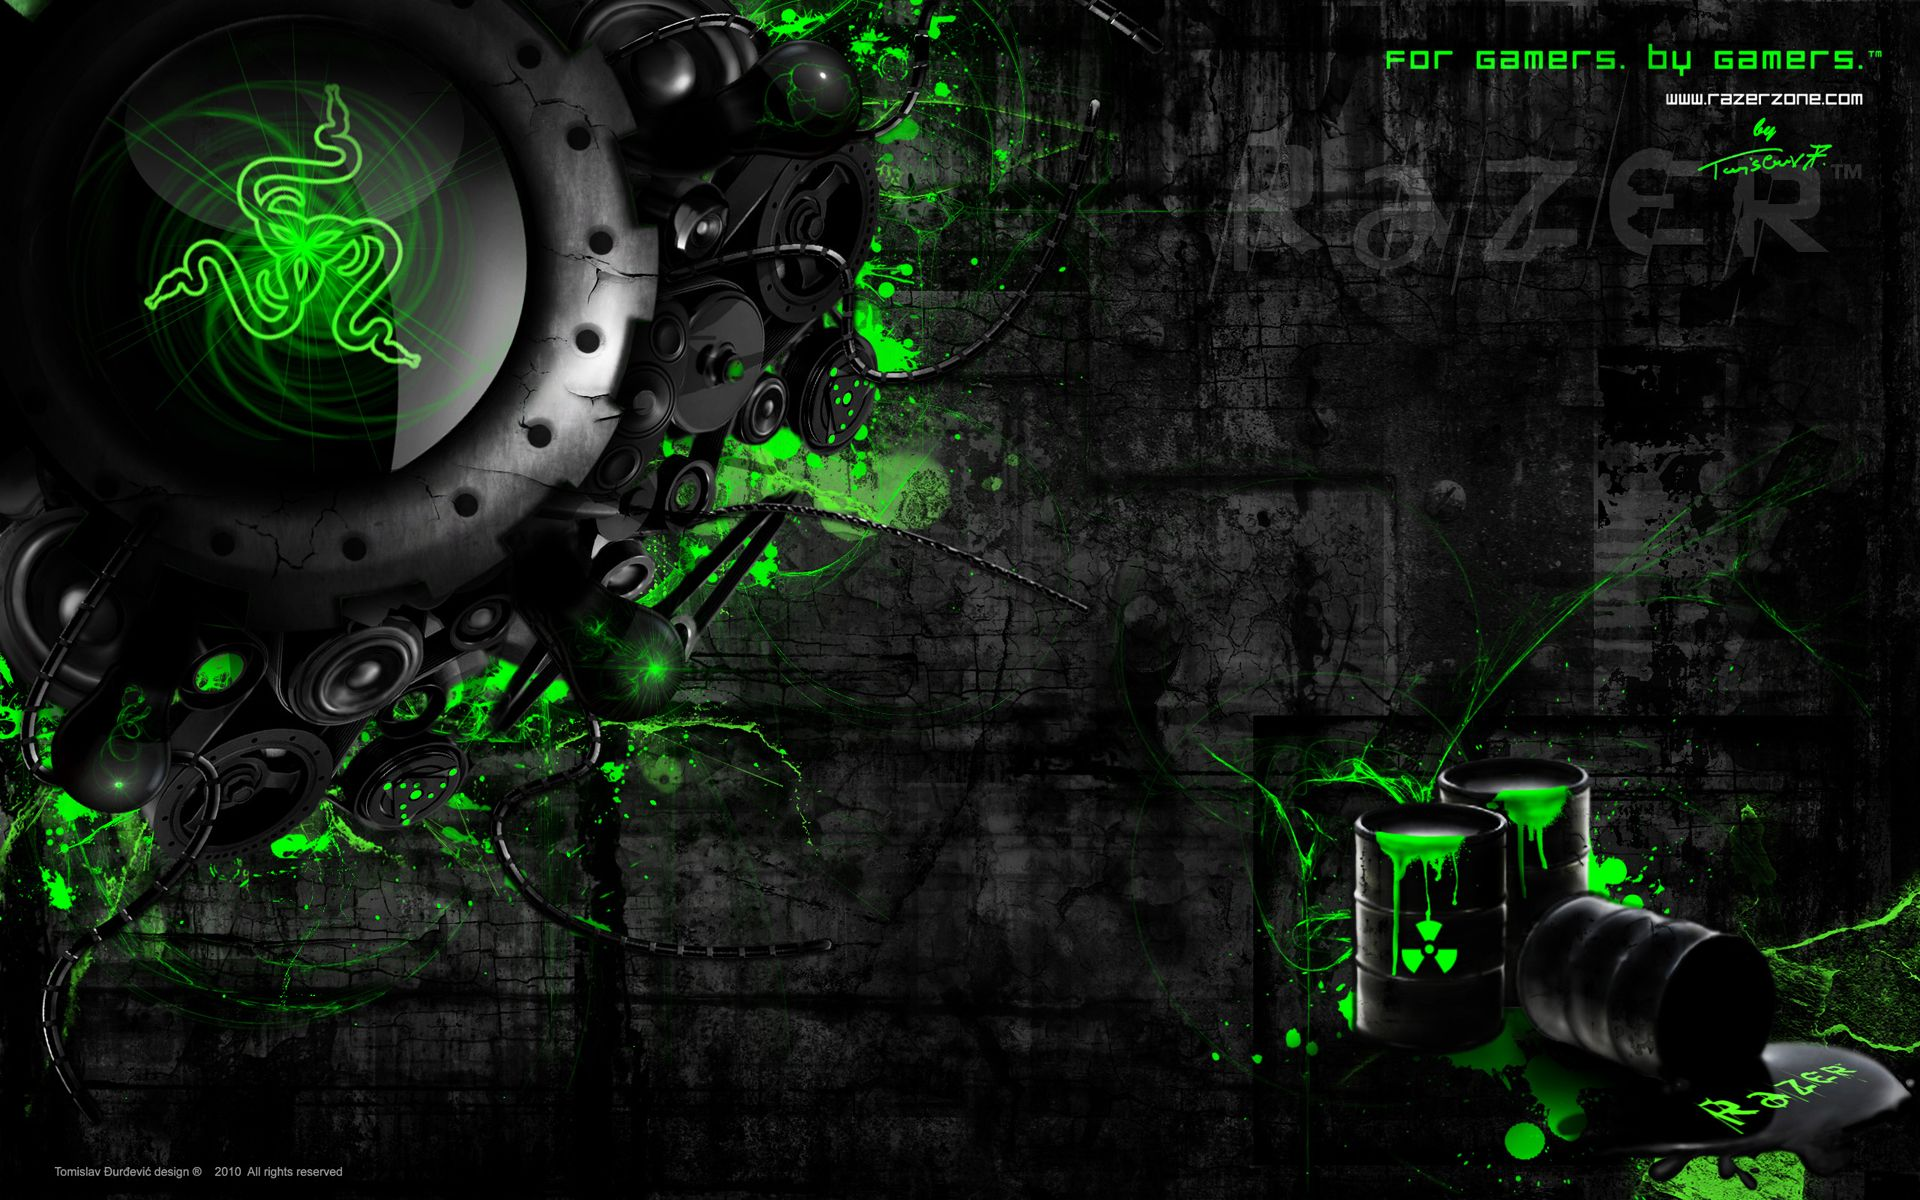 Razer wallpaper Papel de parede wallpaper, Planos de